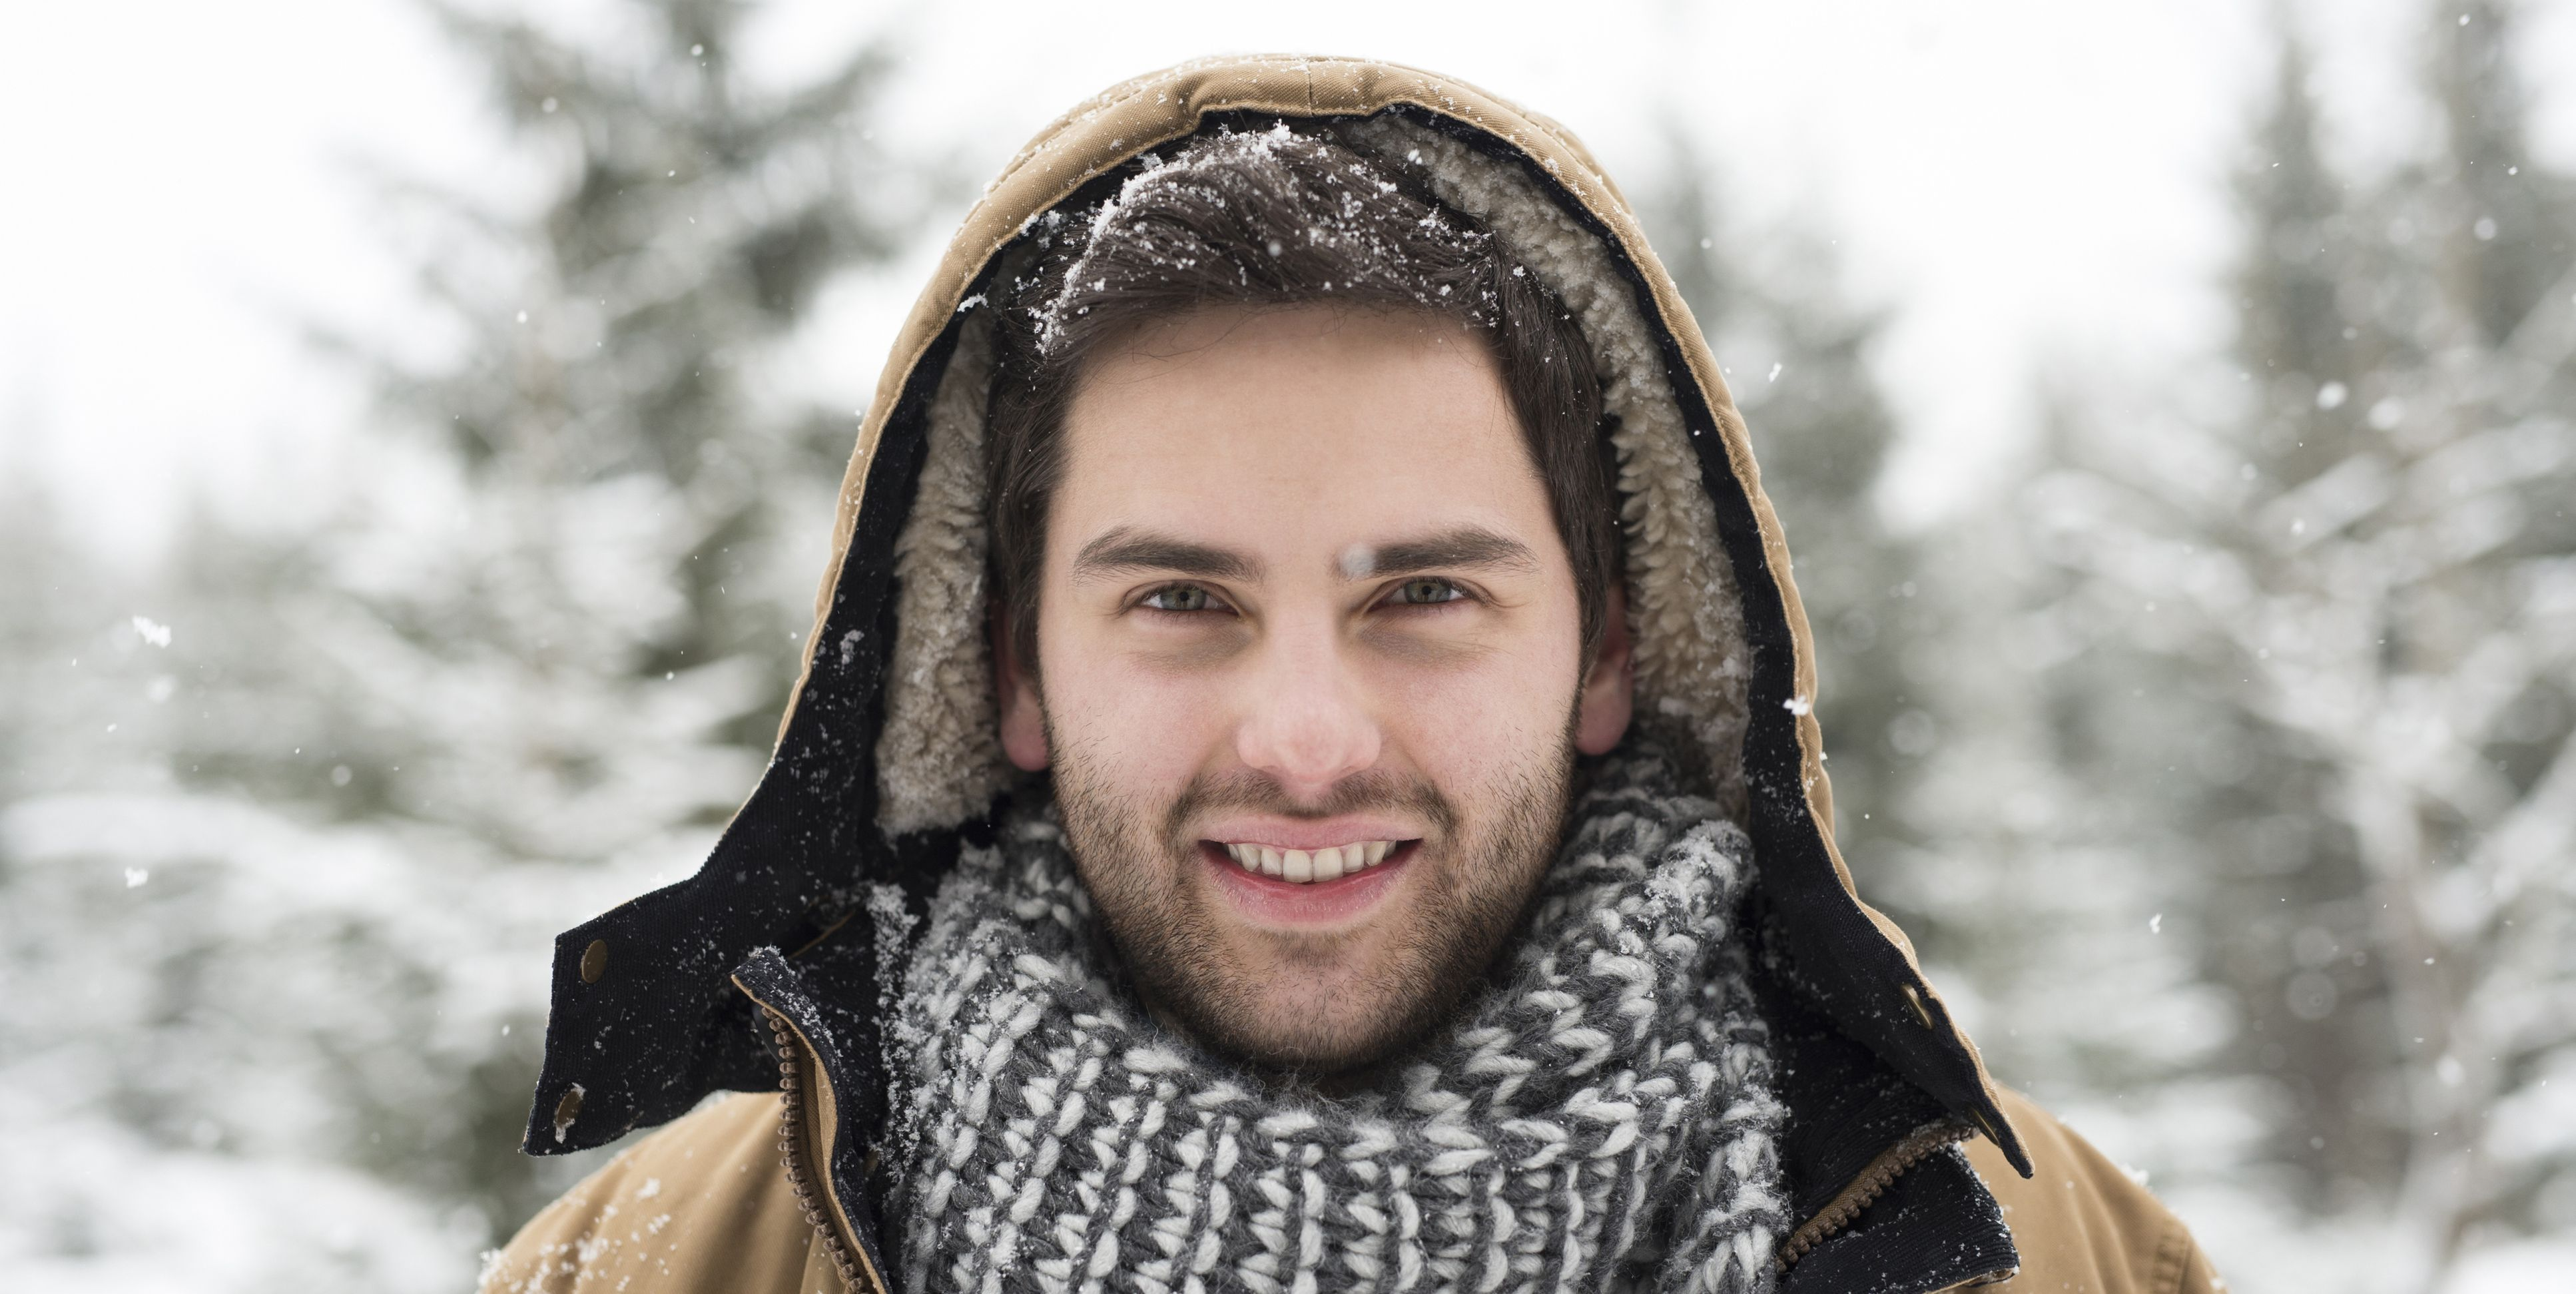 Portrait of smiling young man in winter